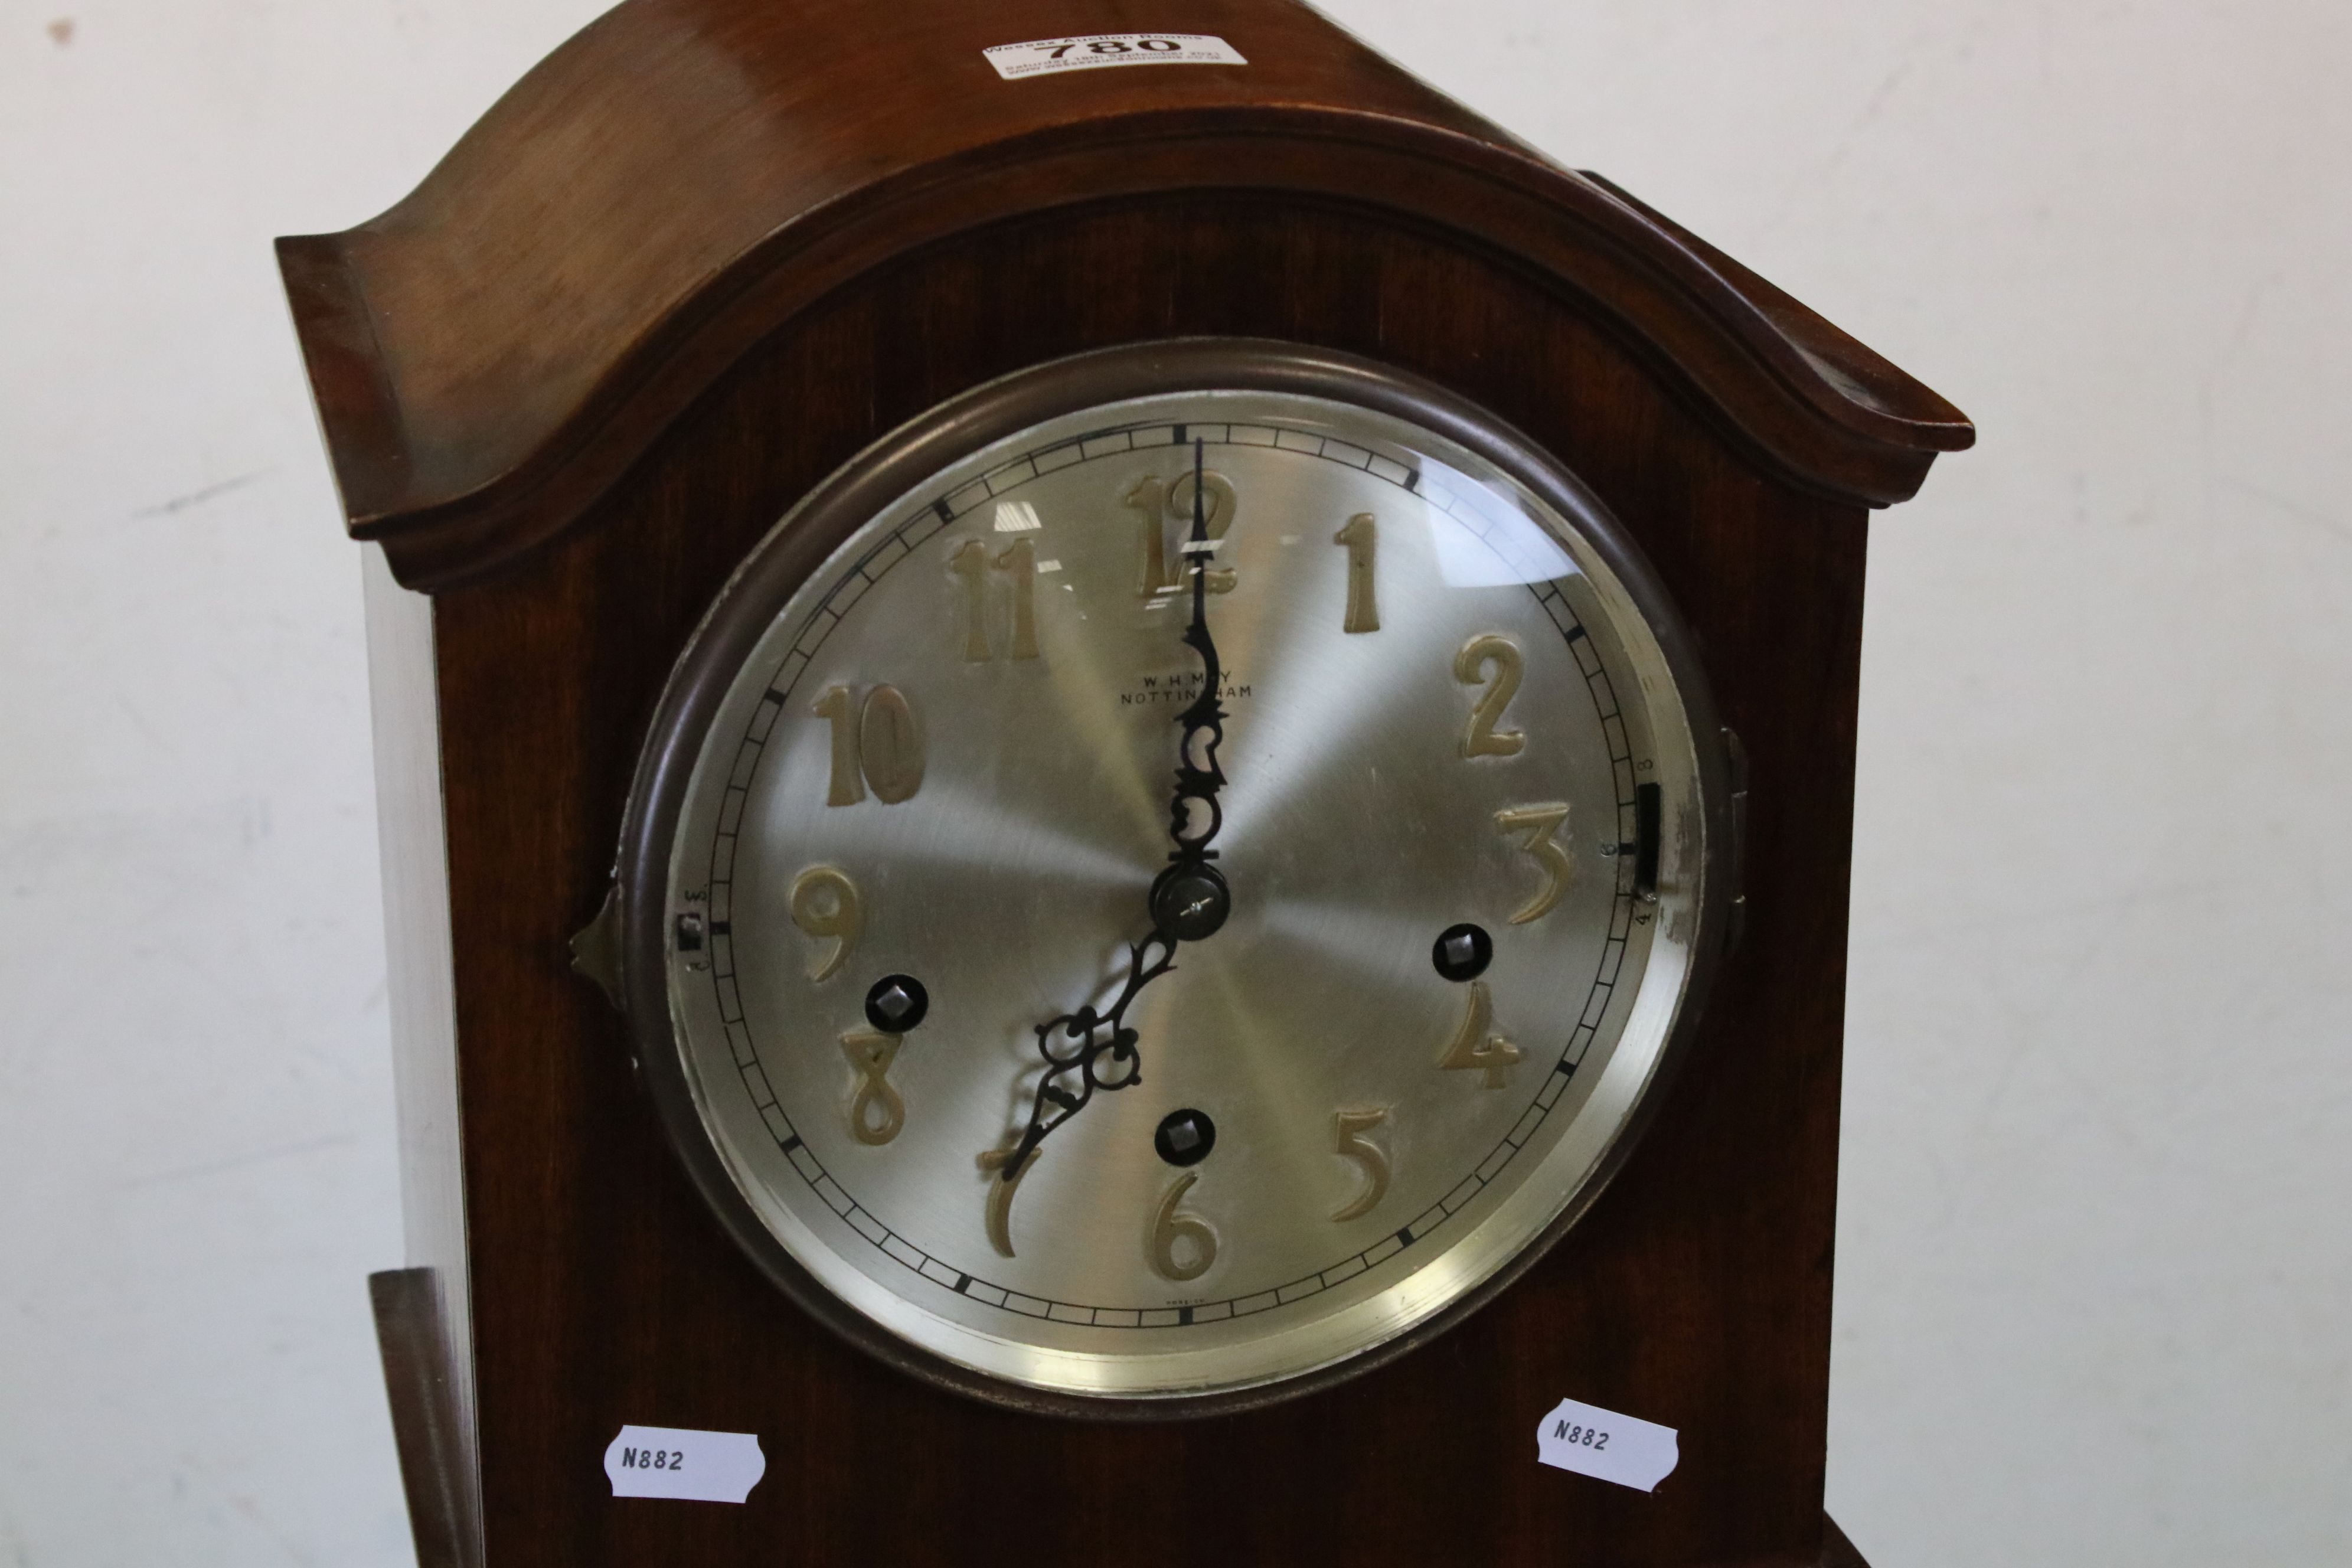 Early 20th century Mahogany Cased Grandmother Clock, the silvered face with Arabic numerals and - Image 2 of 3